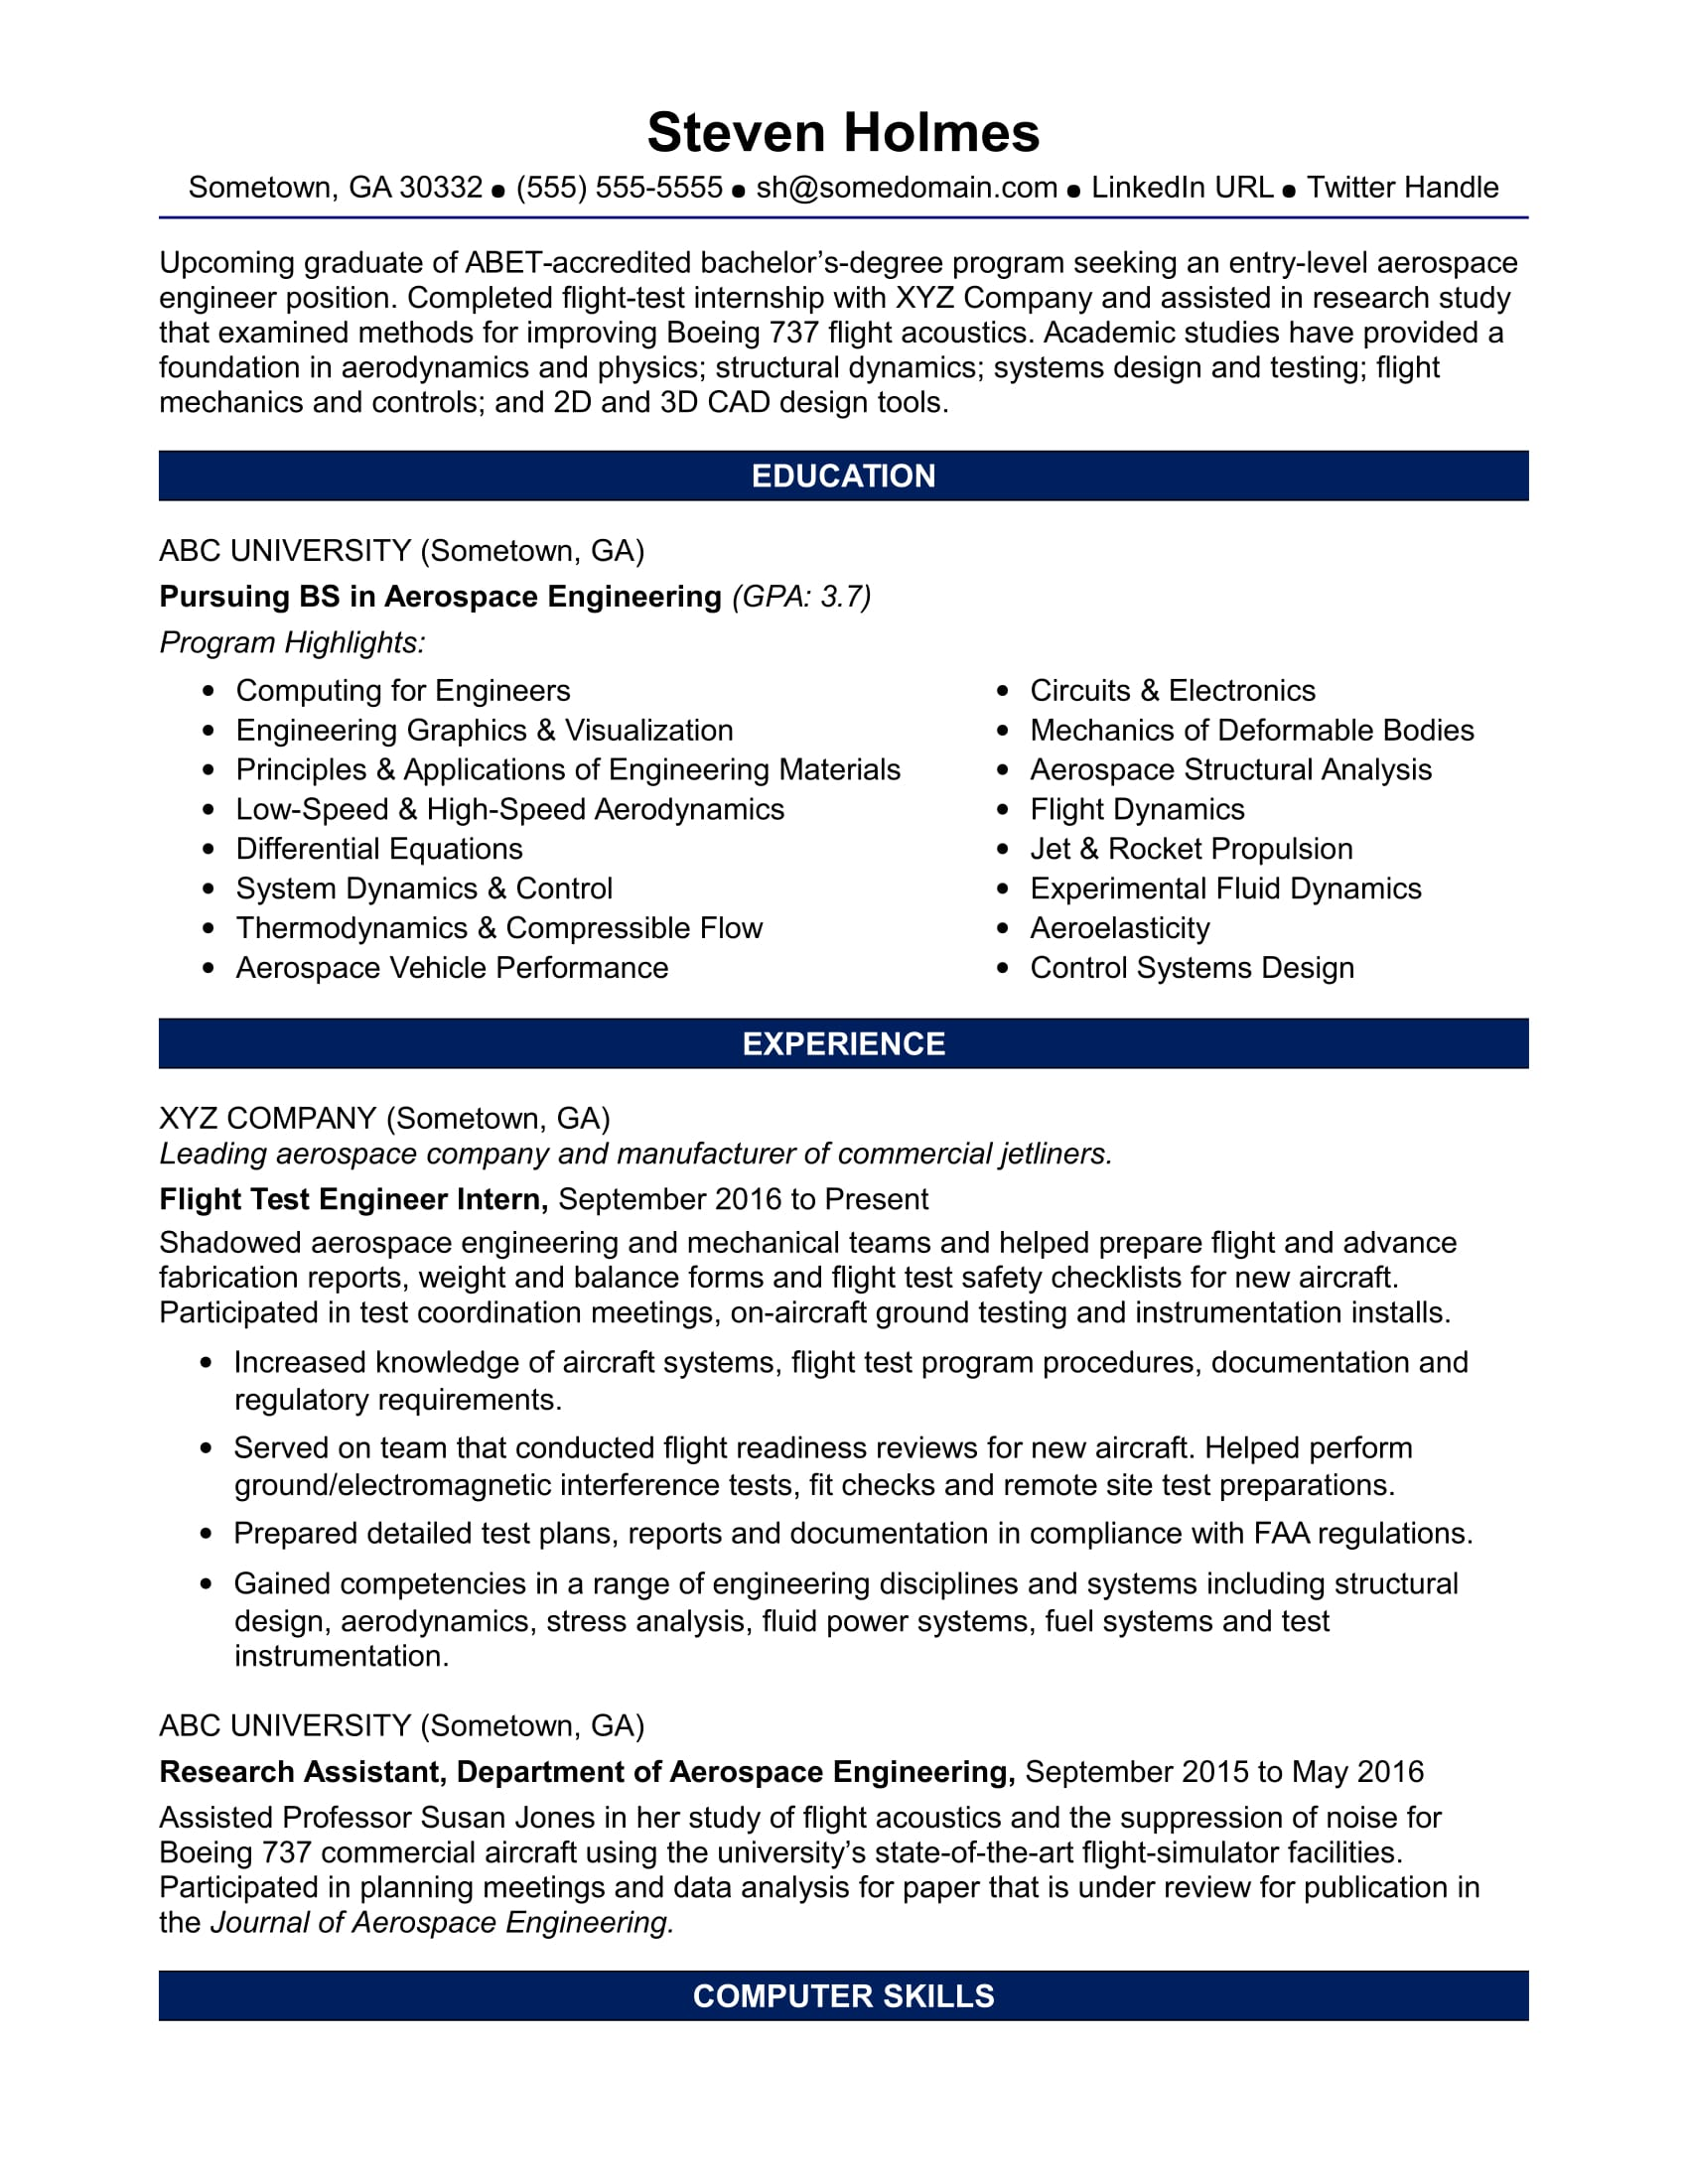 sample resume for an entry level aerospace engineer - Engineer Resume Template